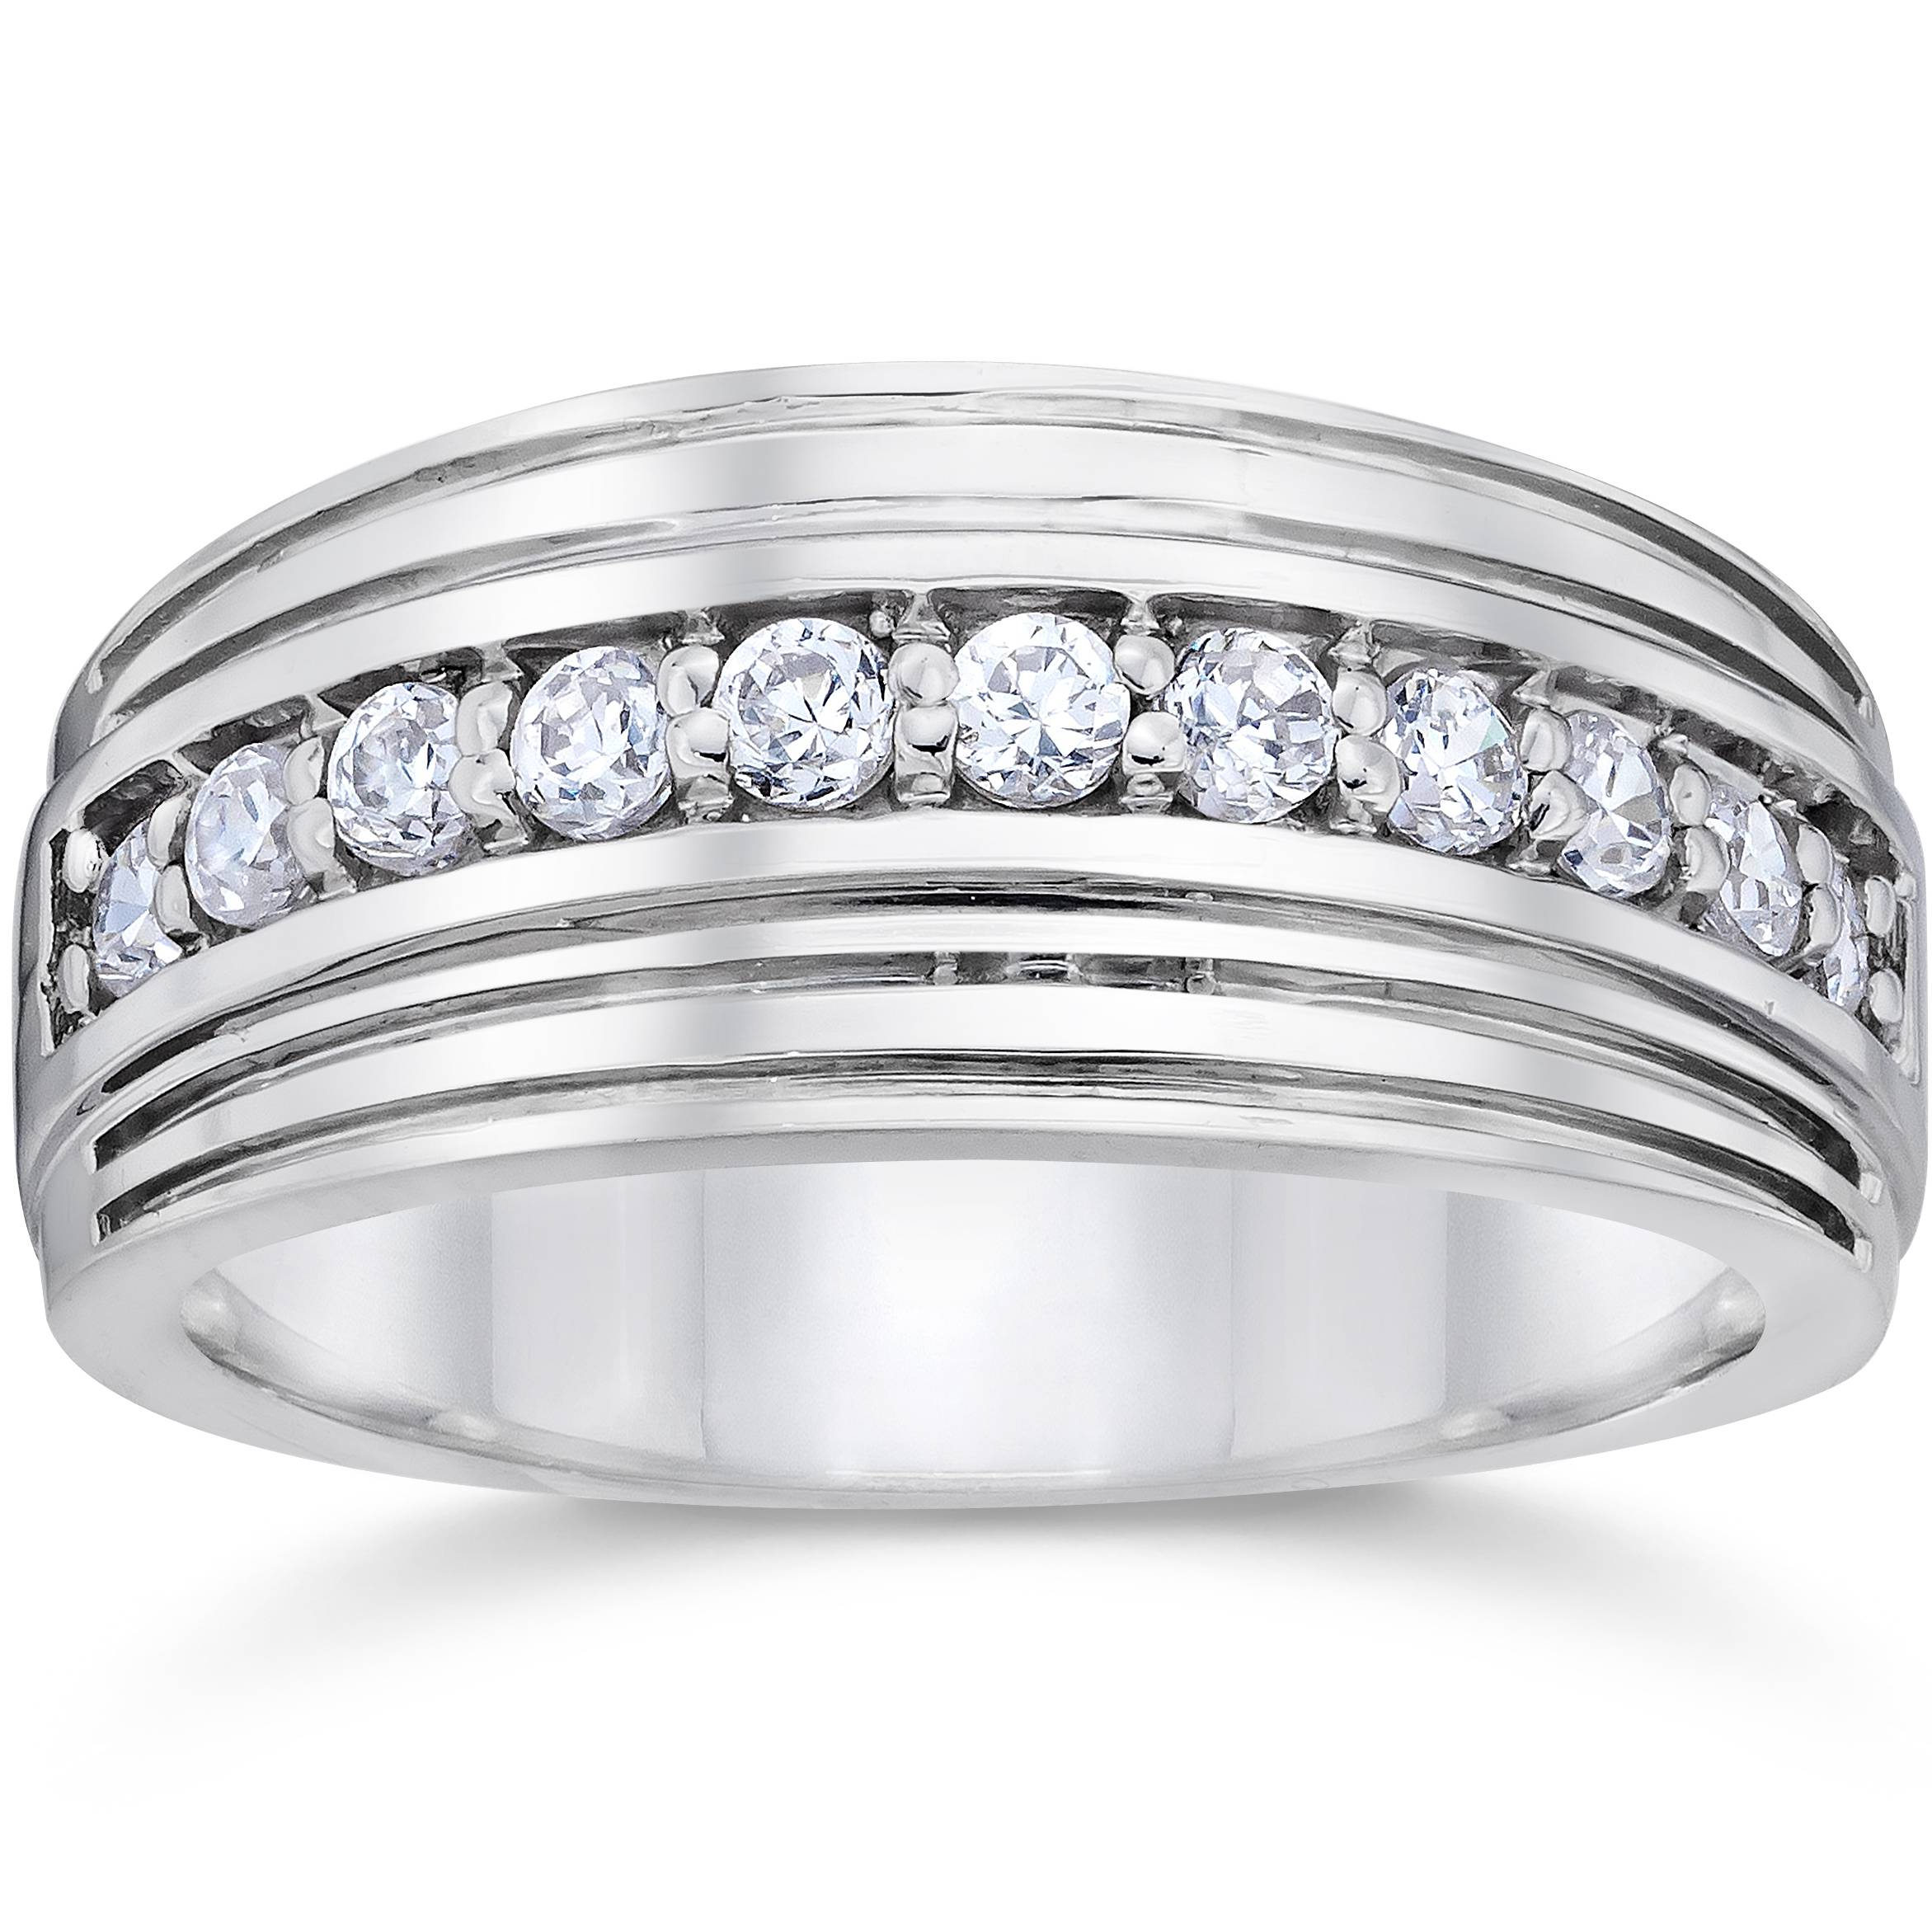 6f011f770fa9d Details about 1 2 Carat Mens Diamond Wedding Ring 10K White Gold